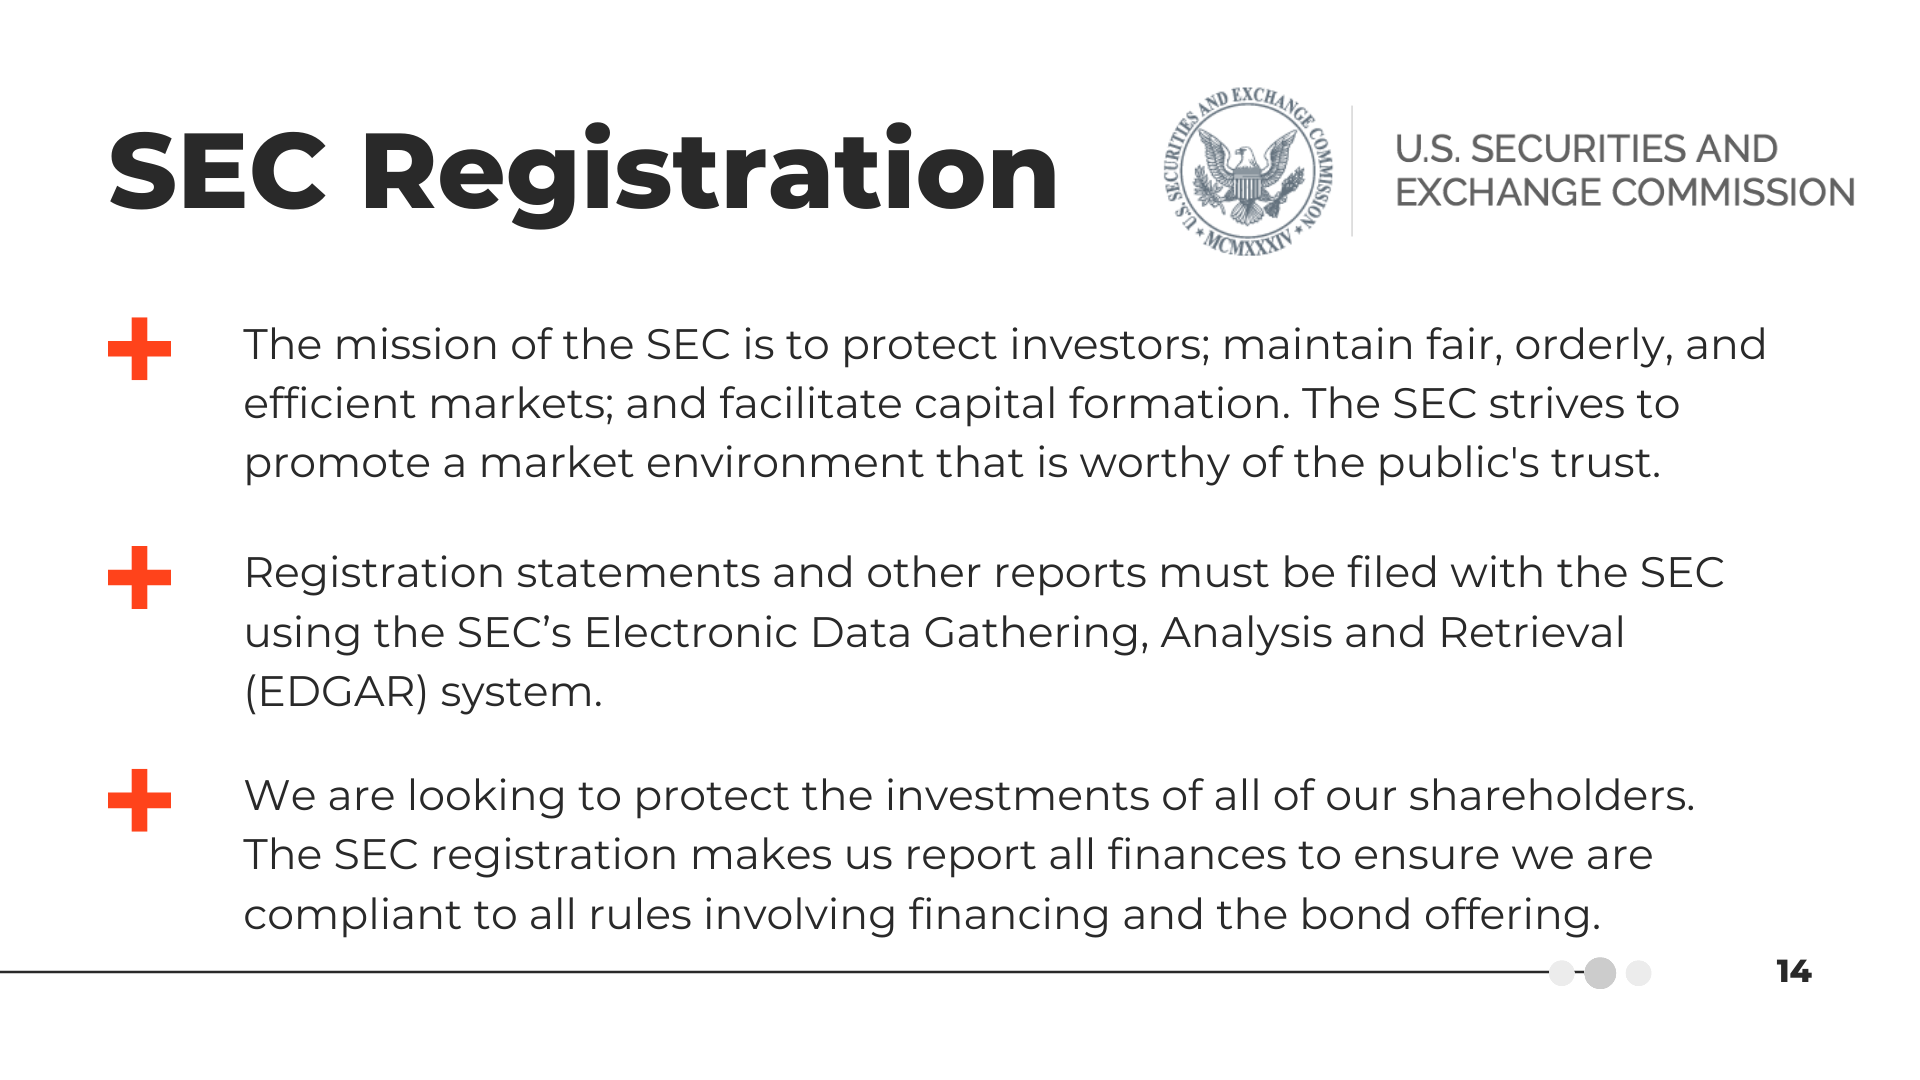 SEC Registration | The mission of the SEC is to protect investors; maintain fair, orderly, and efficient markets; and facilitate capital formation. The SEC strives to promote a market environment that is worthy of the public's trust. | Registration statements and other reports must be filed with the SEC using the SEC's Electronic Data Gathering, Analysis, and Retrieval (EDGAR) system. | We are looking to protect the investments of all of our shareholders. The SEC registration makes us report all finances to ensure we are compliant with all rules involving financing and the bond offering.